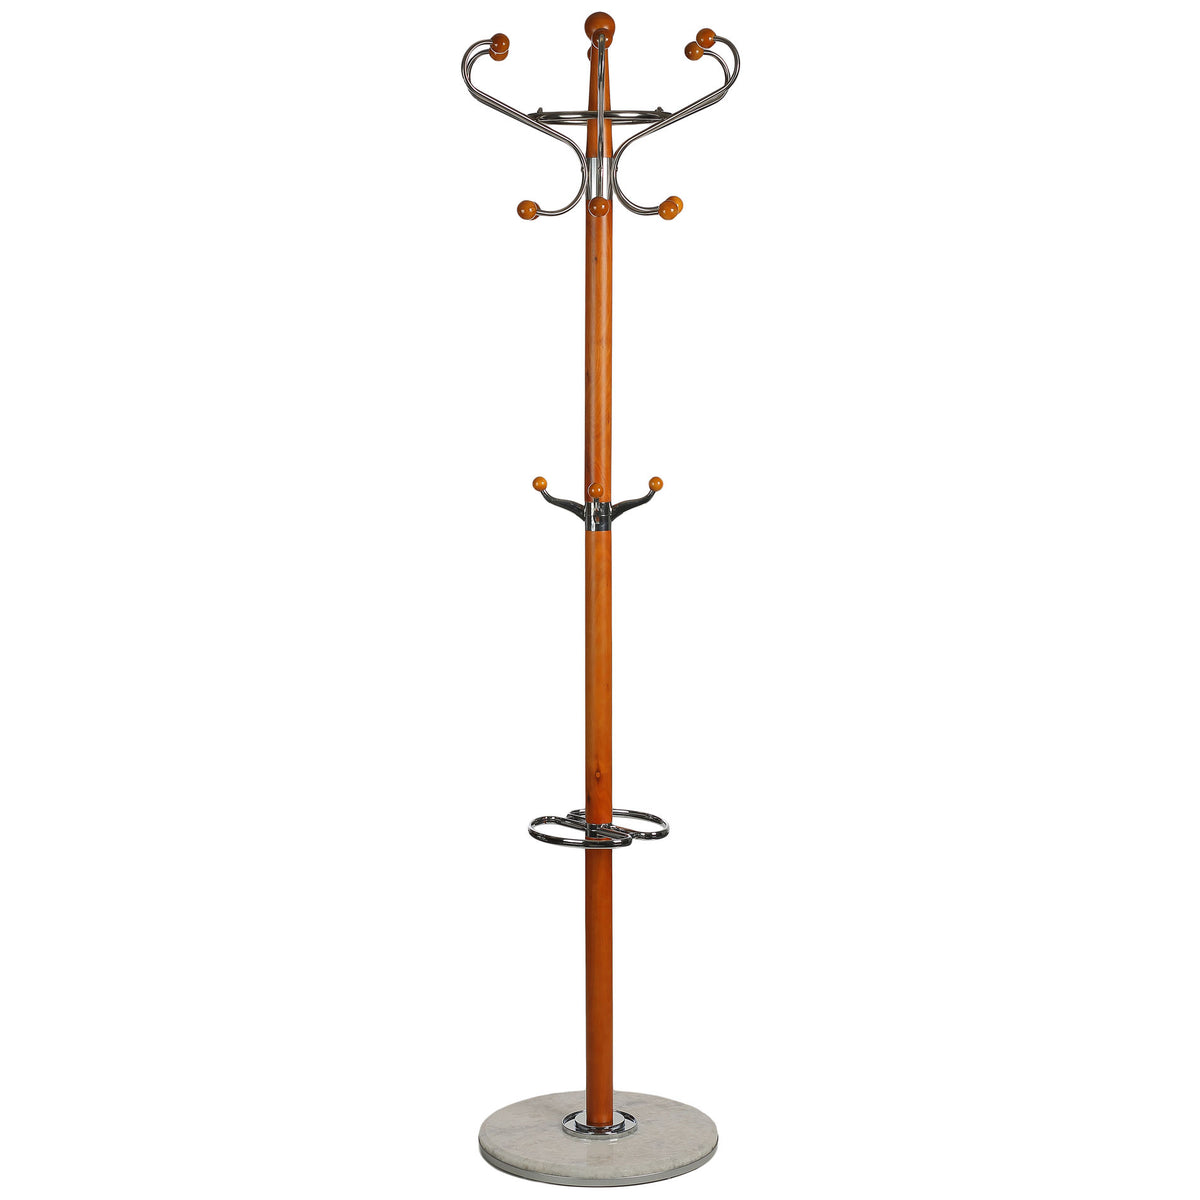 Cortesi Home Optima Light Six Foot Chrome and Natural Wood Coat Rack, Light Marble